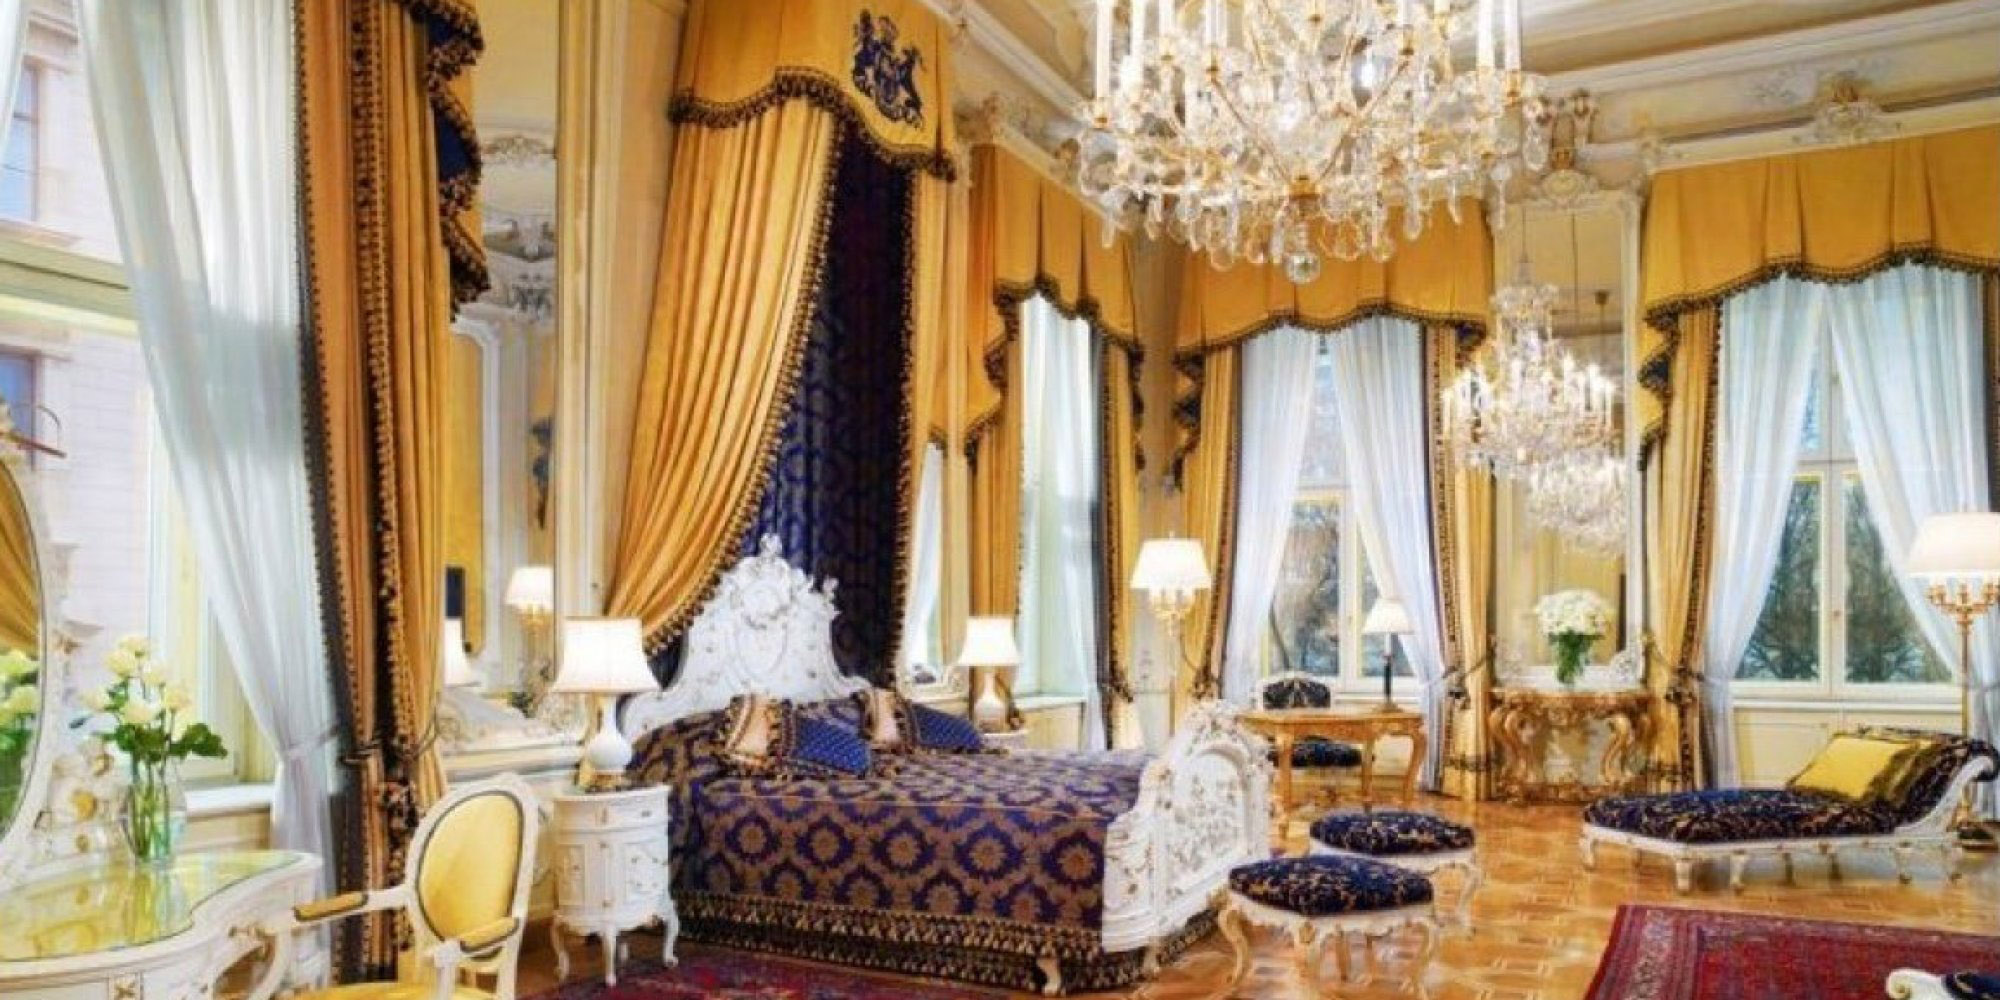 Imperial Suite - Hôtel Ritz Paris